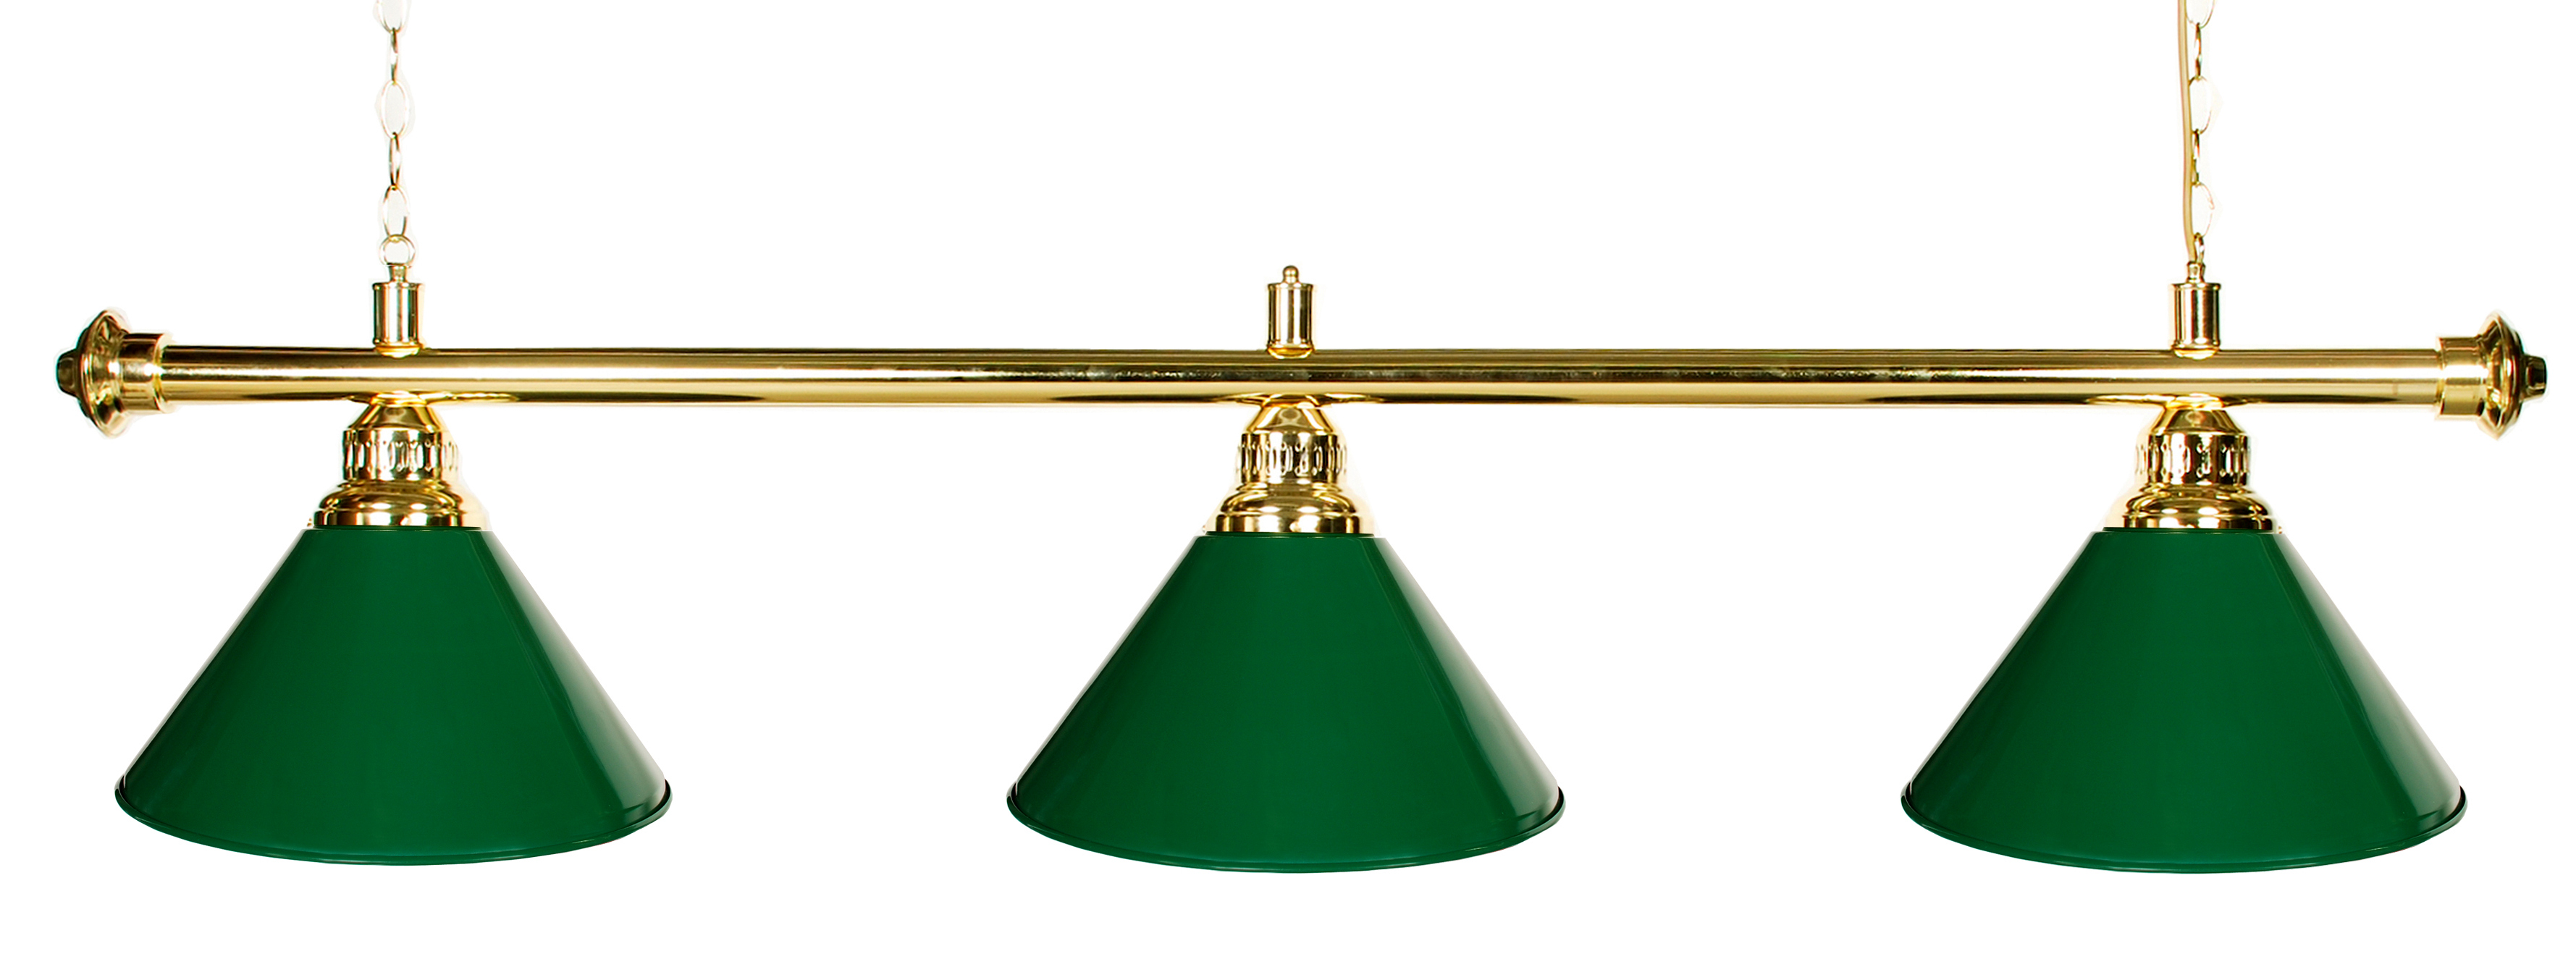 "61"" Pool Table Light Pool Table Light With Metal Green Shades For 7 or 8' Table by"